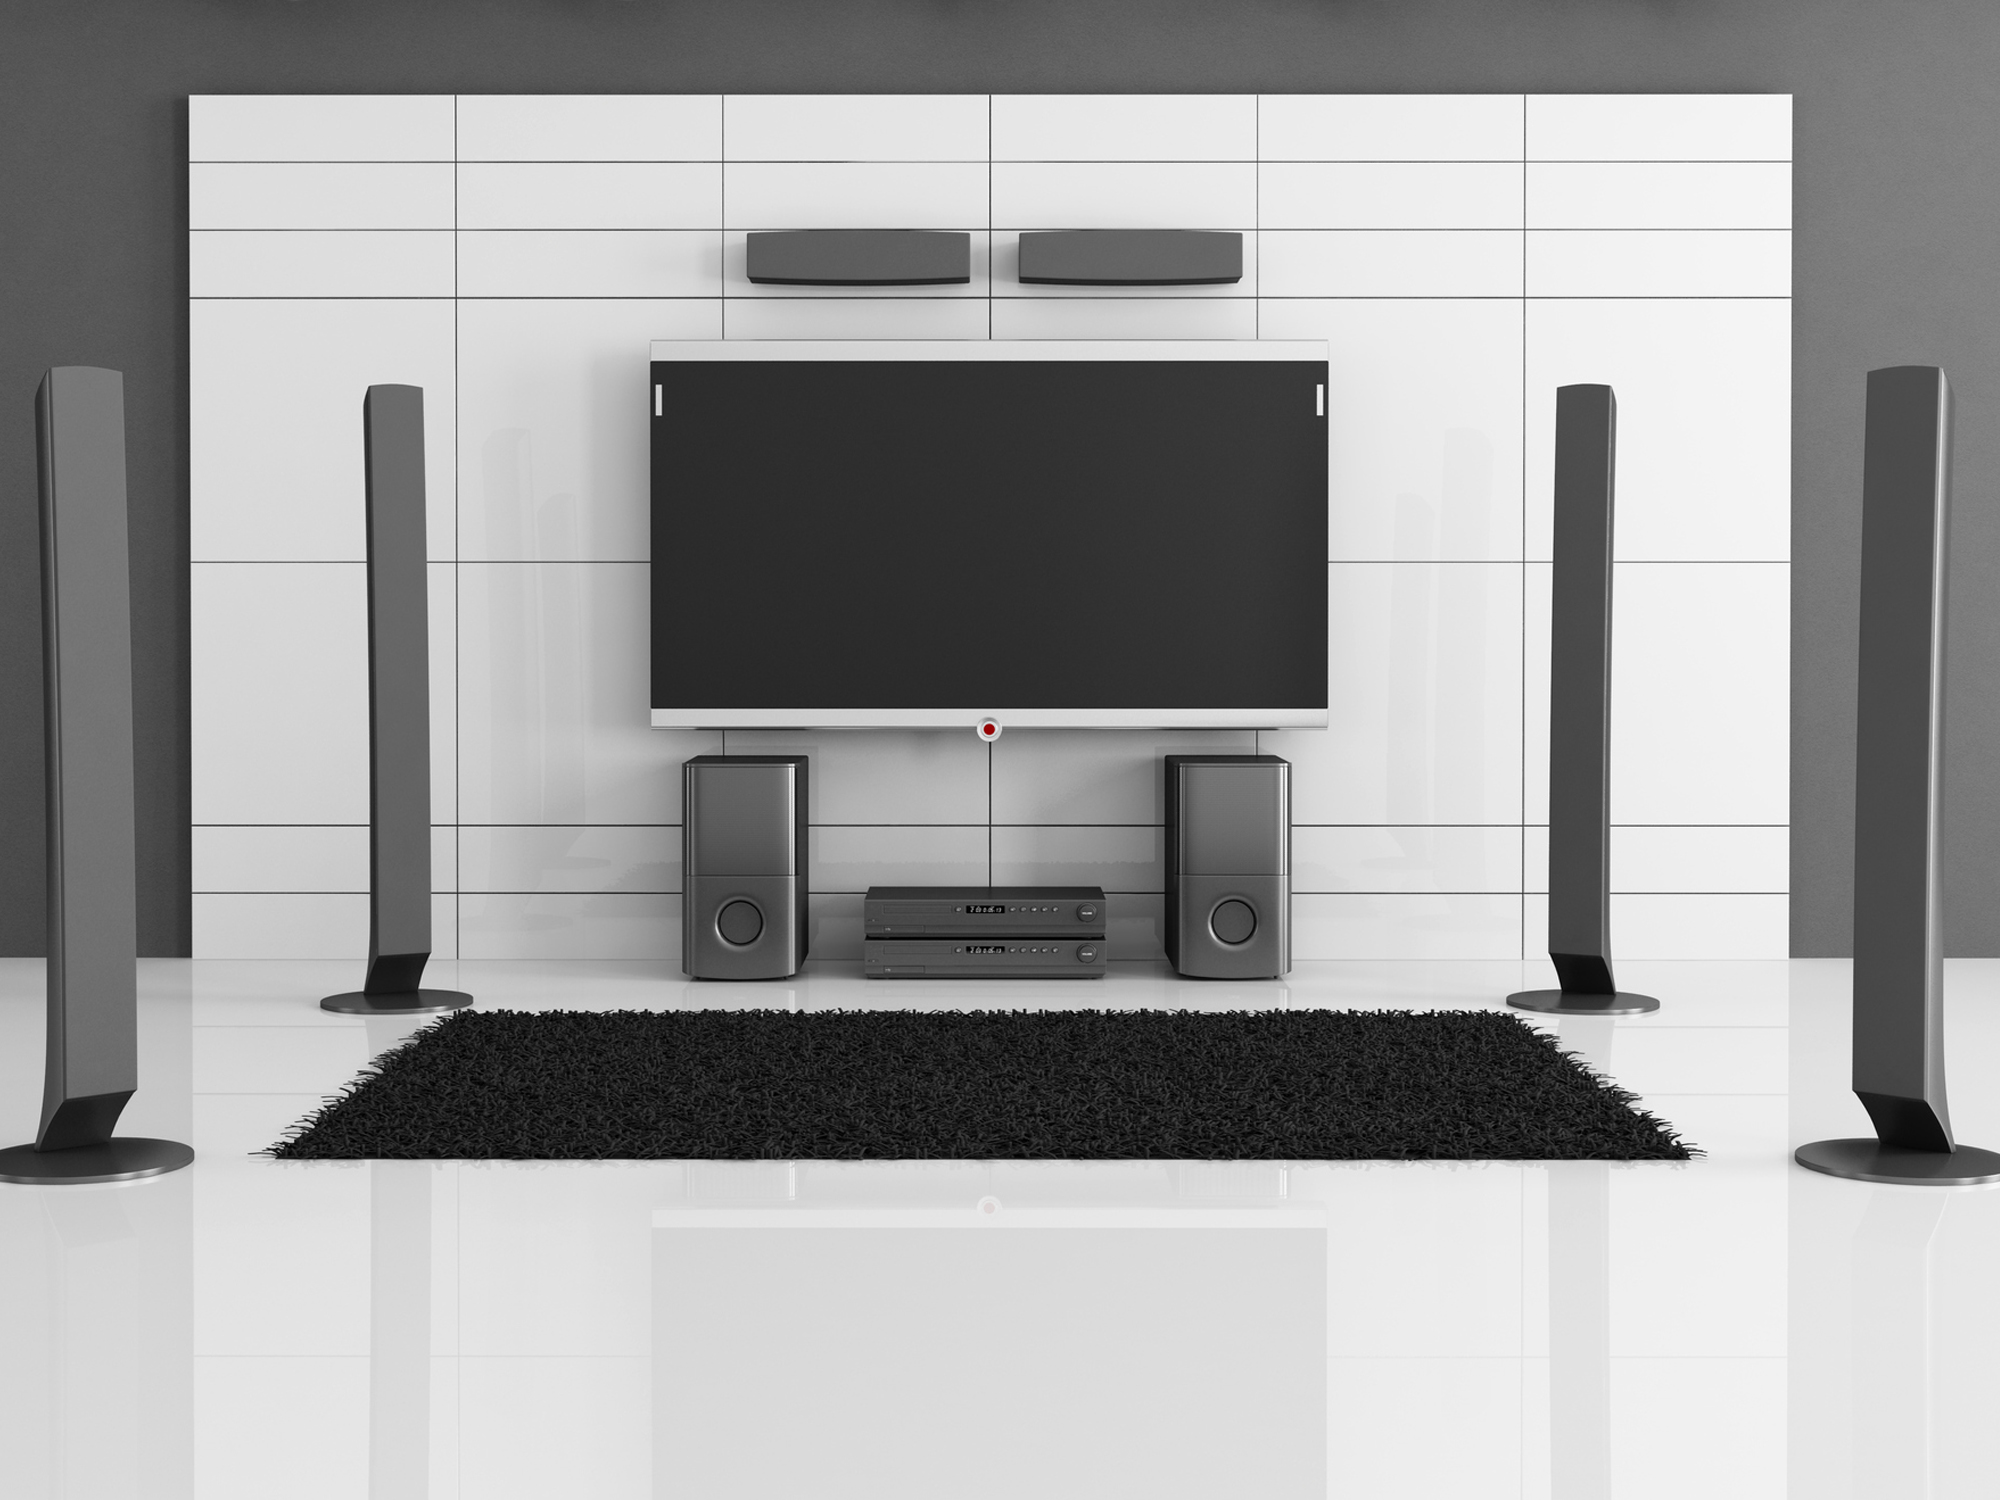 Home Entertainment Systems Are Popular In New And Existing Homes In